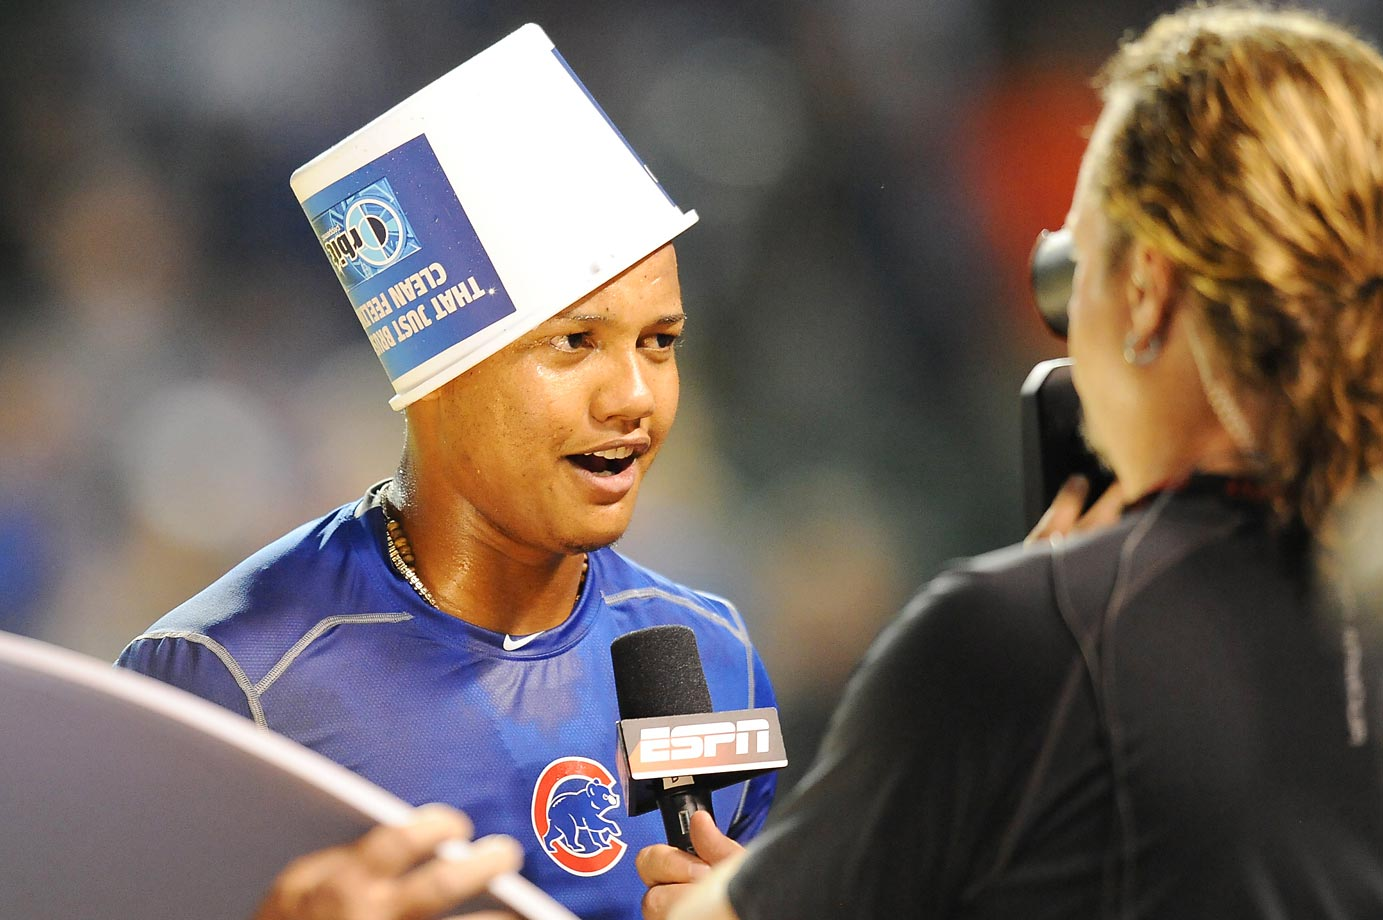 Starlin Castro of the Chicago Cubs goofs around during an interview after a win over the Cincinnati Reds.